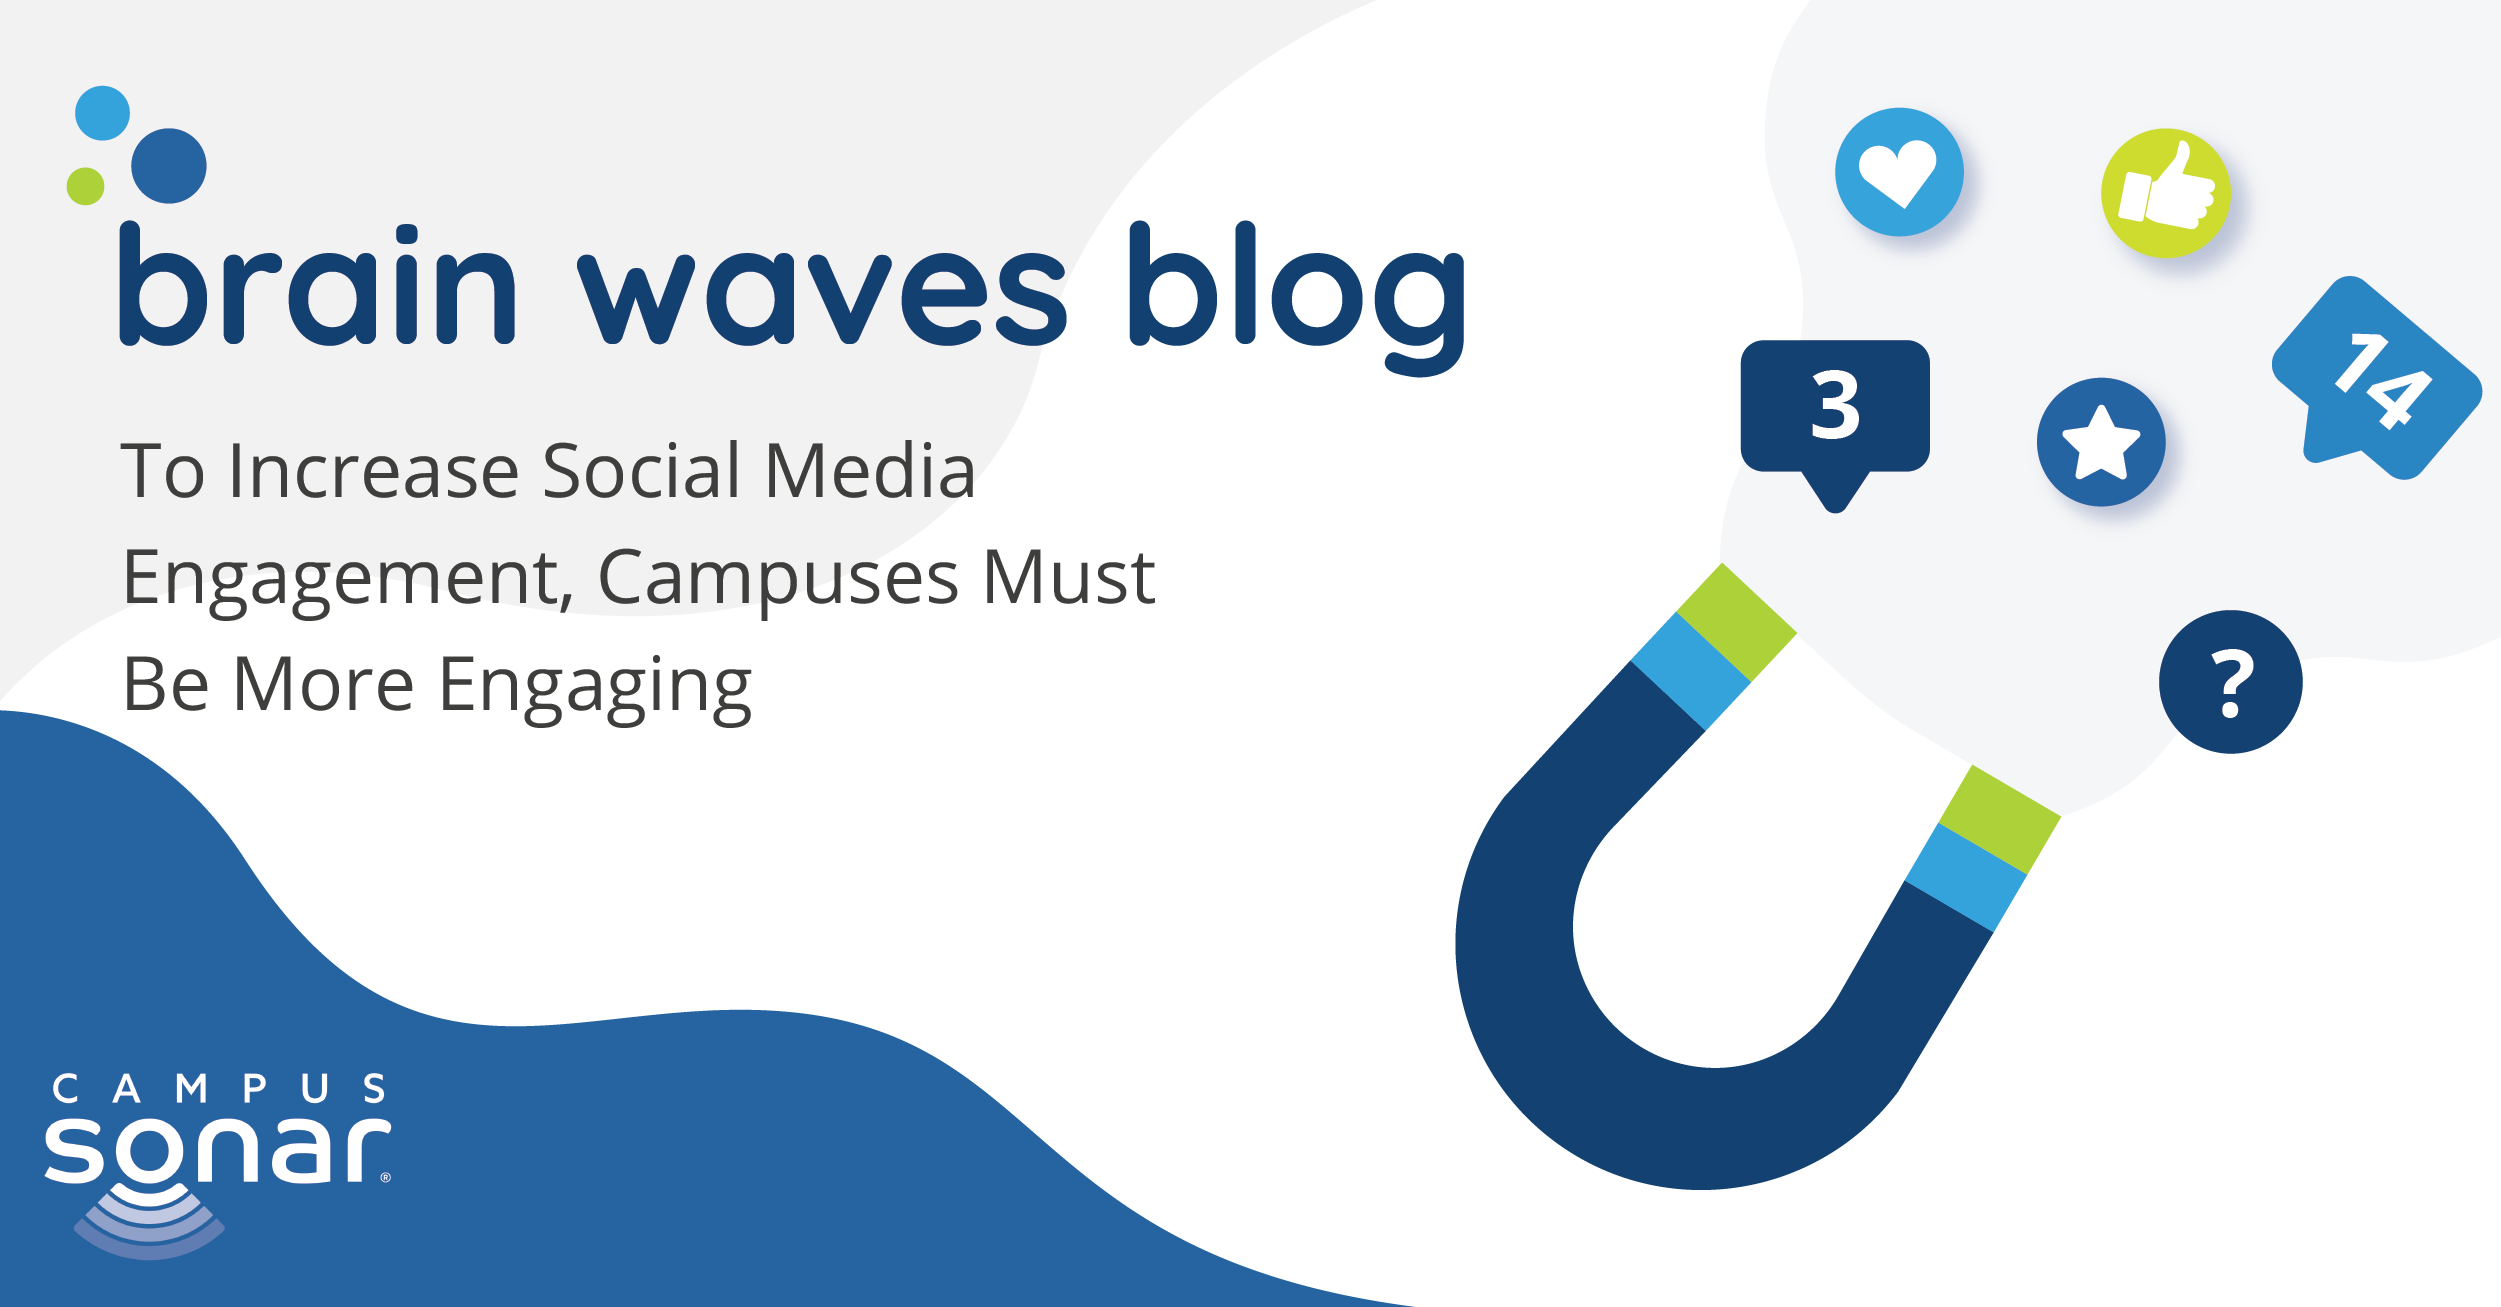 Brain Waves Blog: To Increase Social Media Engagement, Campuses Must Be More Engaging